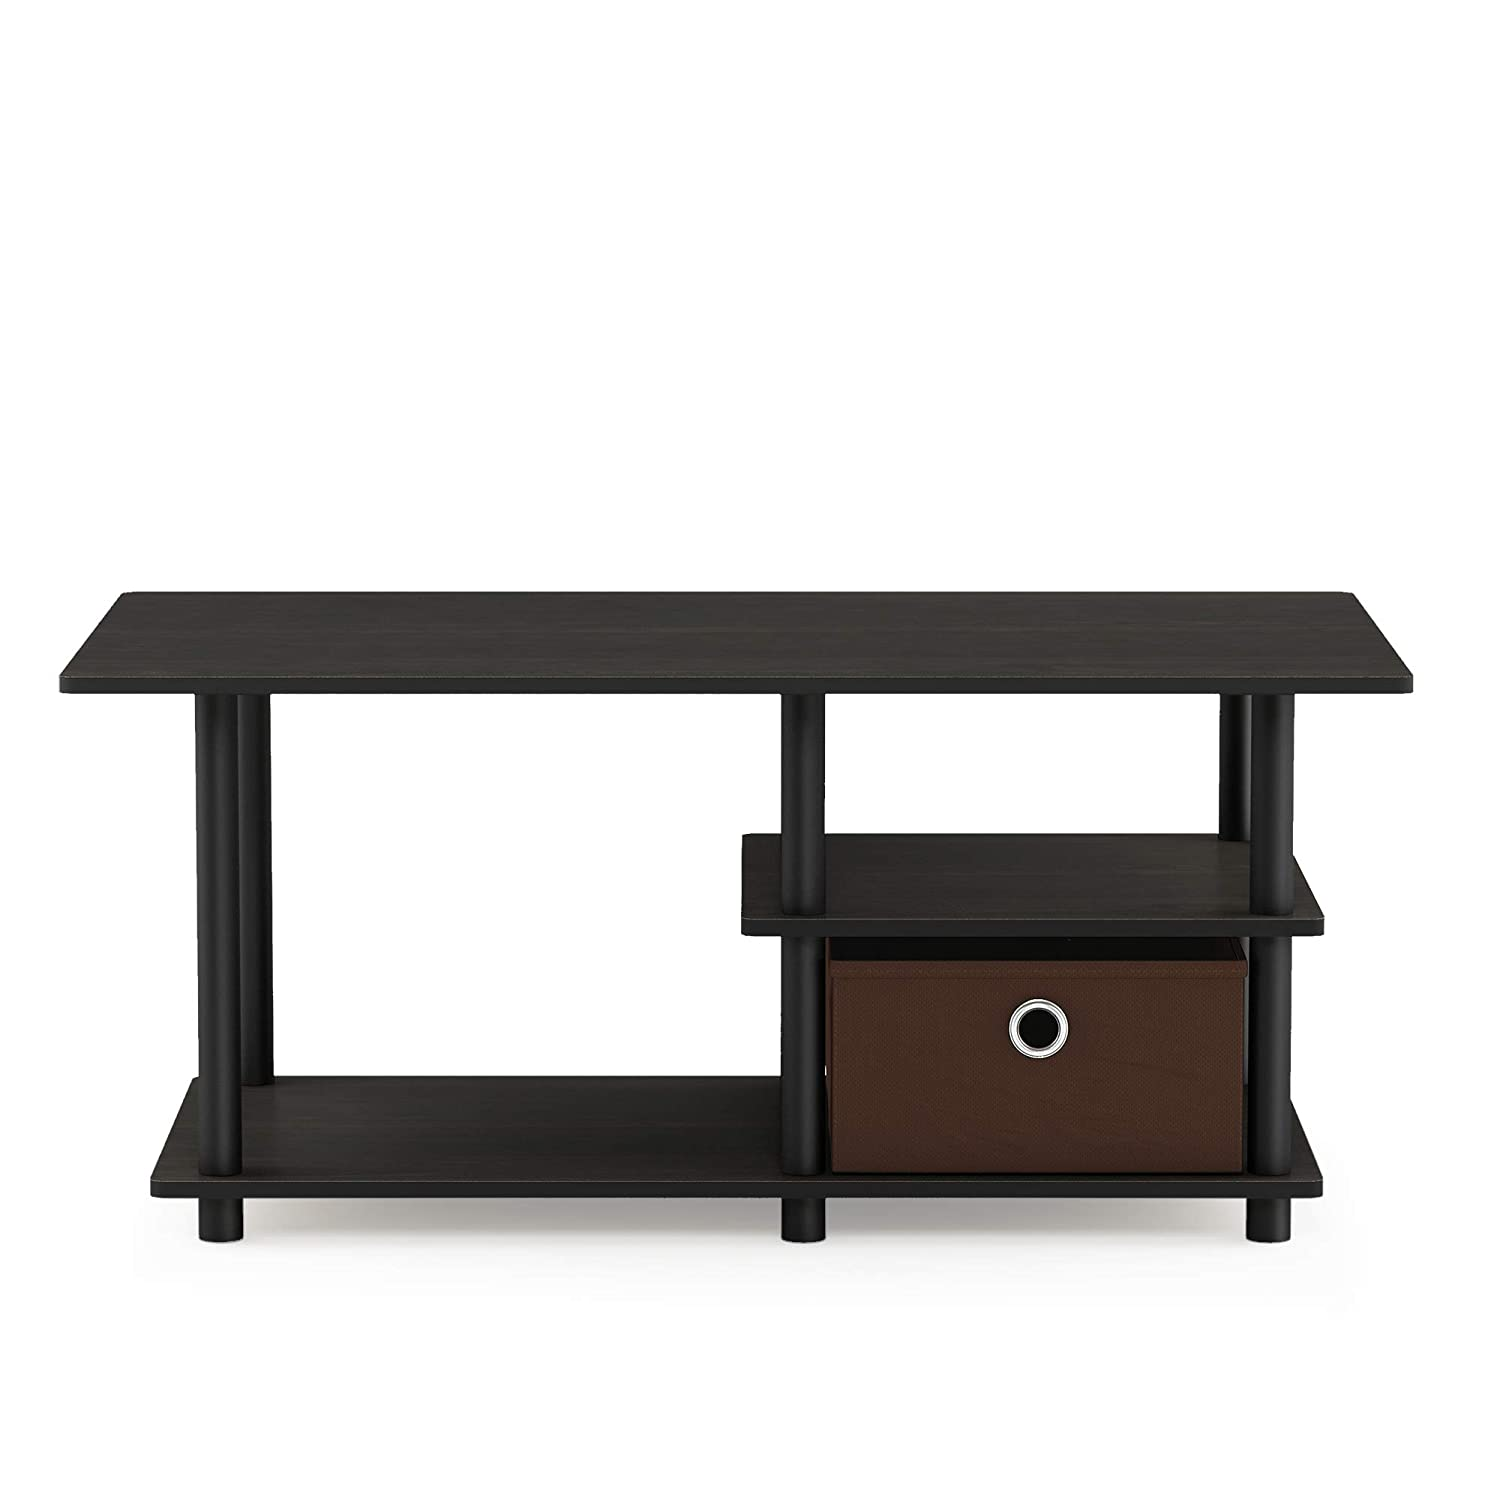 Furinno Turn-N-Tube Toolless TV Stand up to 45 , Espresso Black Dark Brown